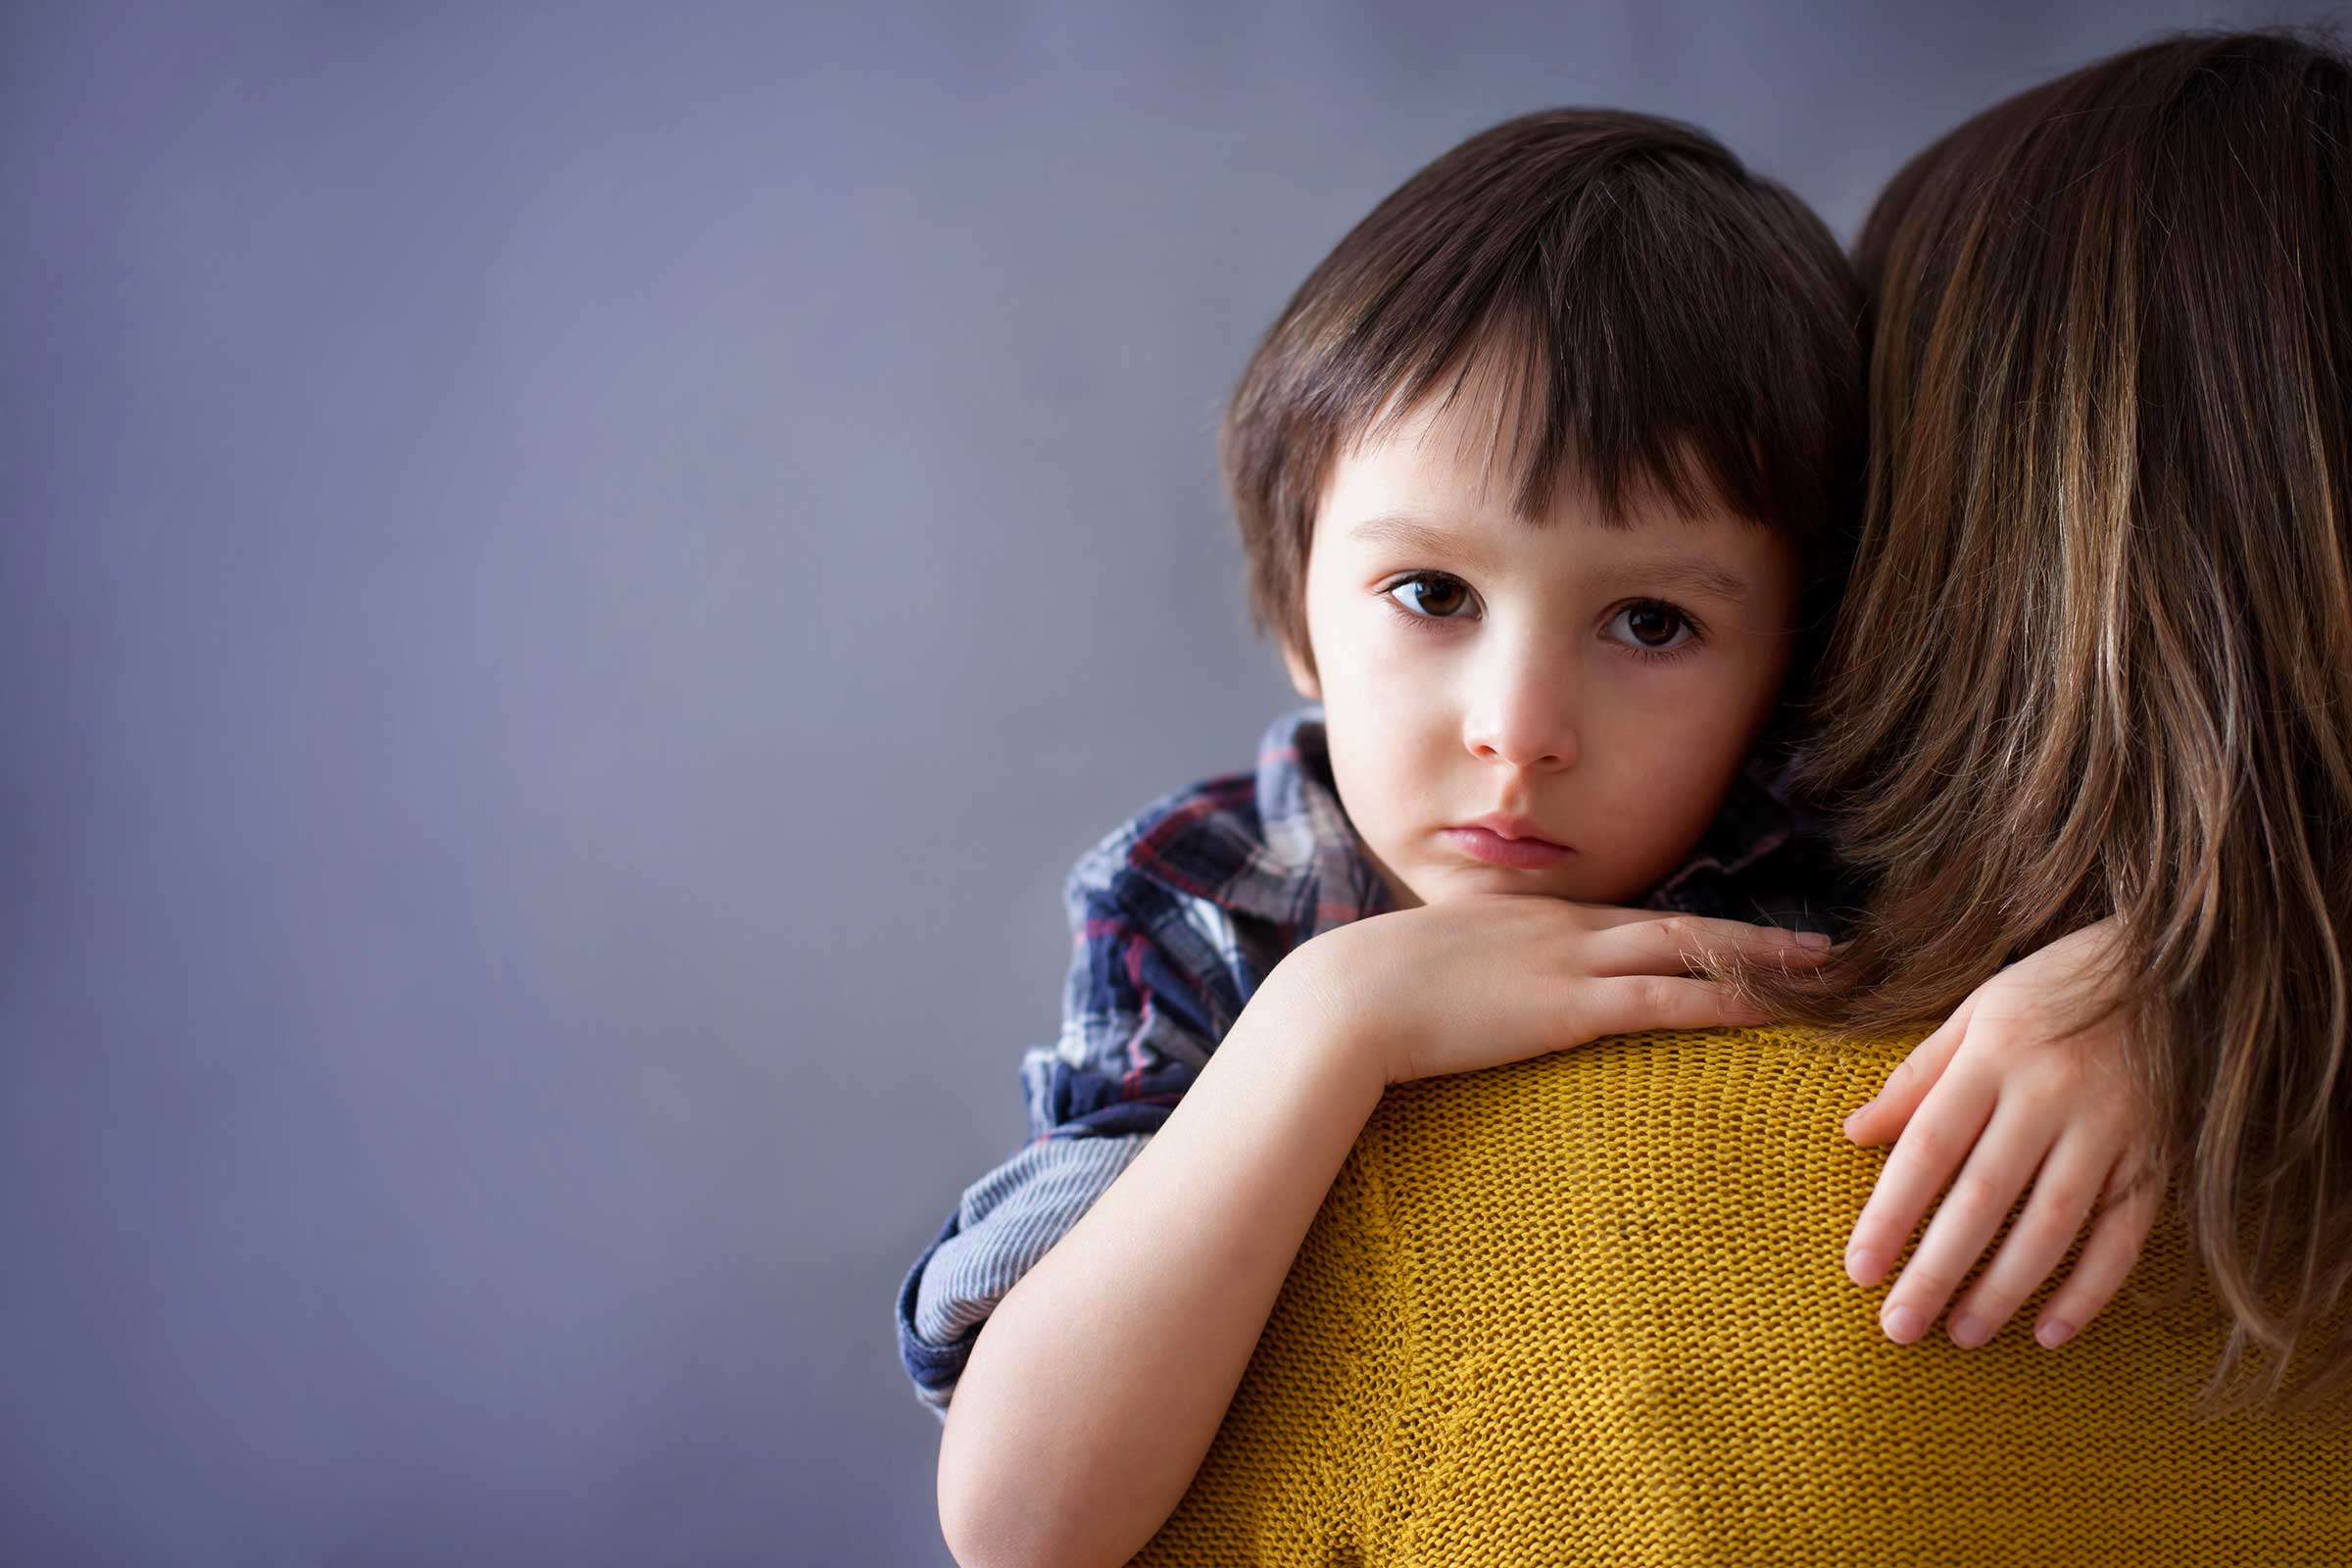 Does My Child Need Therapy?